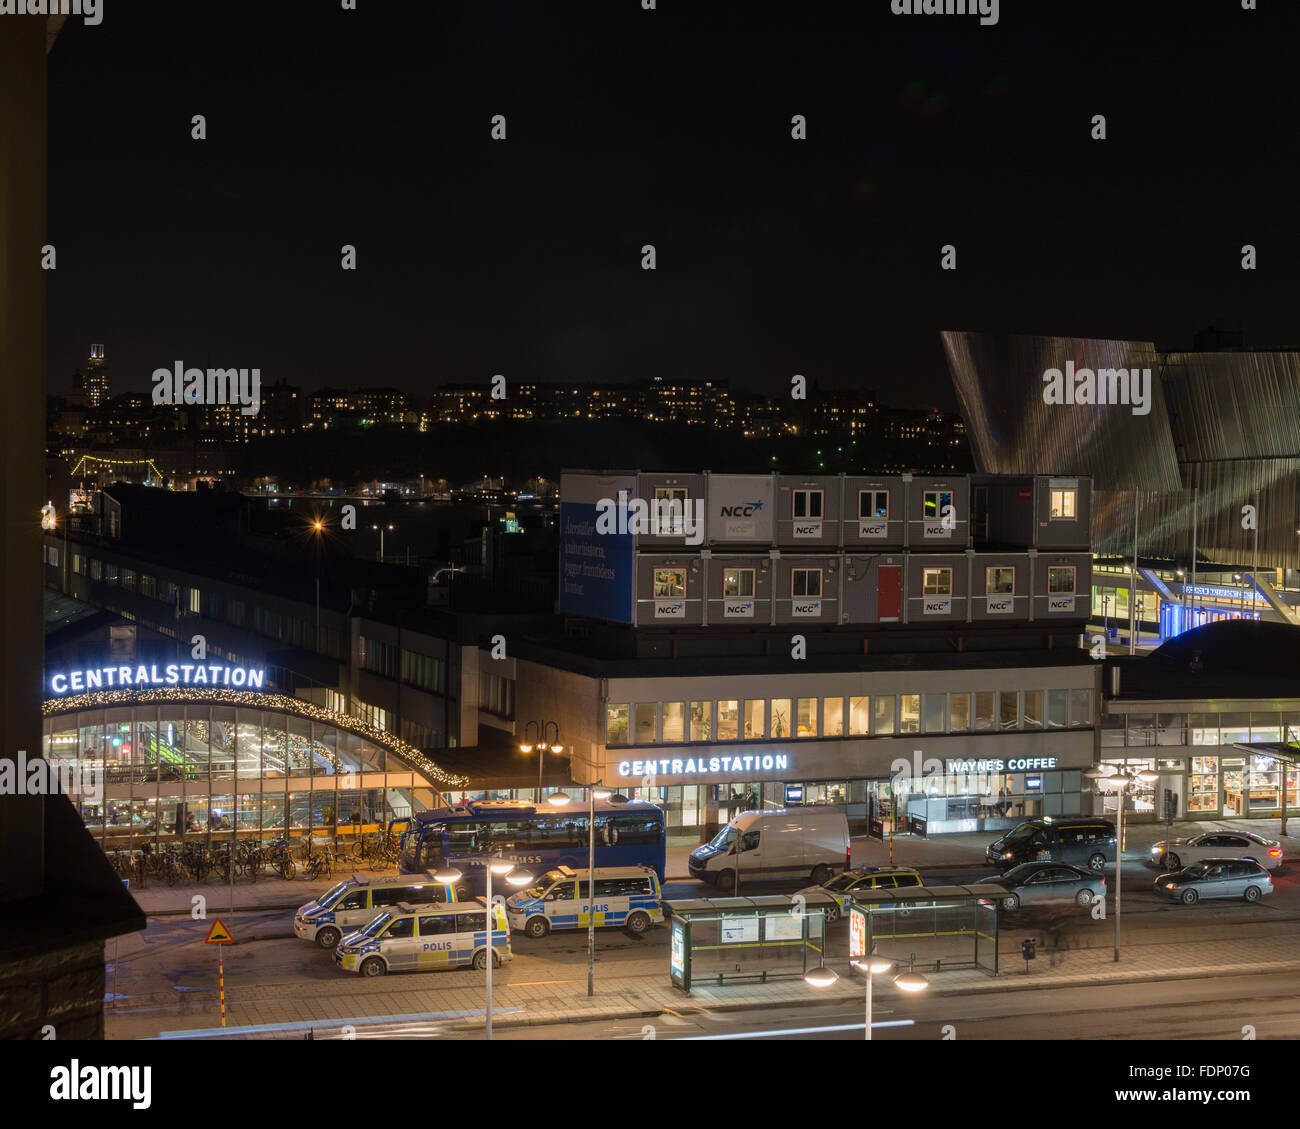 Police vans parked outside Central Station, Stockholm, Sweden - Stock Image